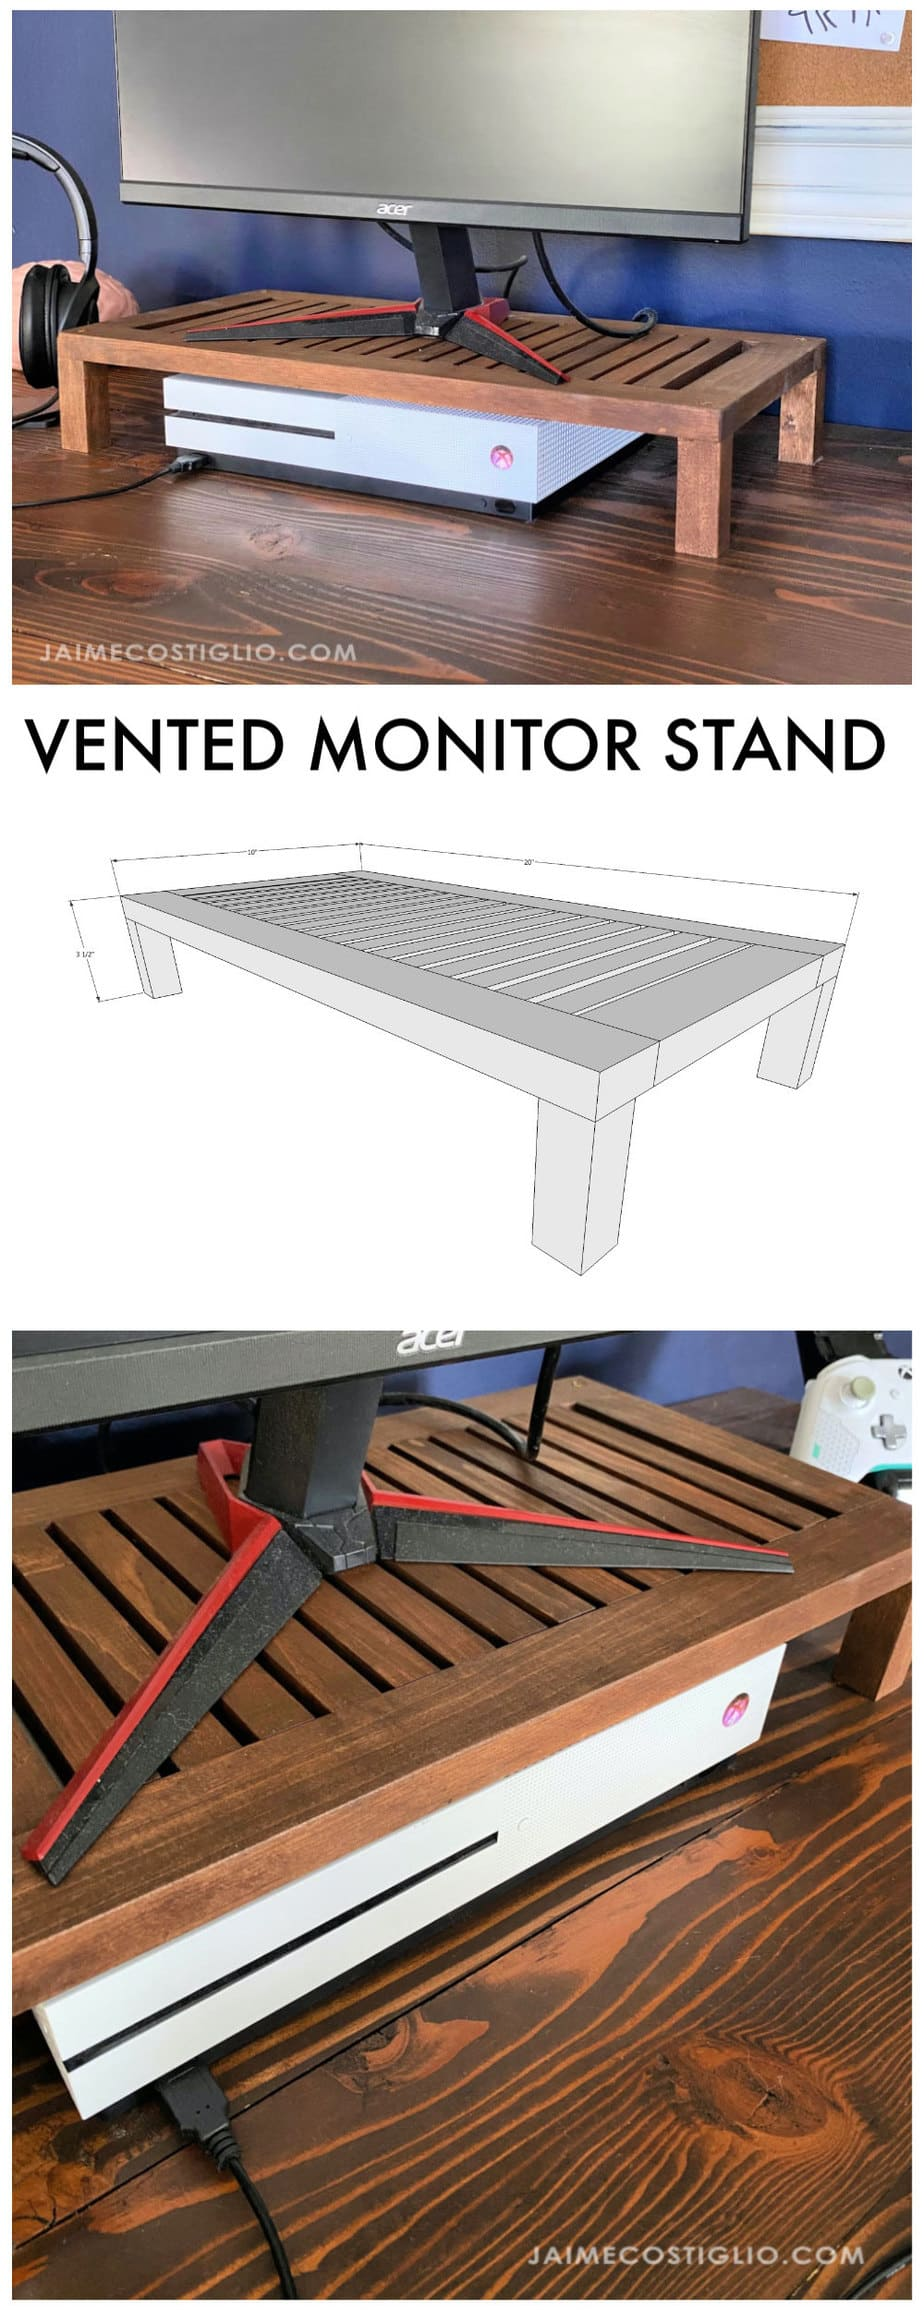 vented monitor stand with slats